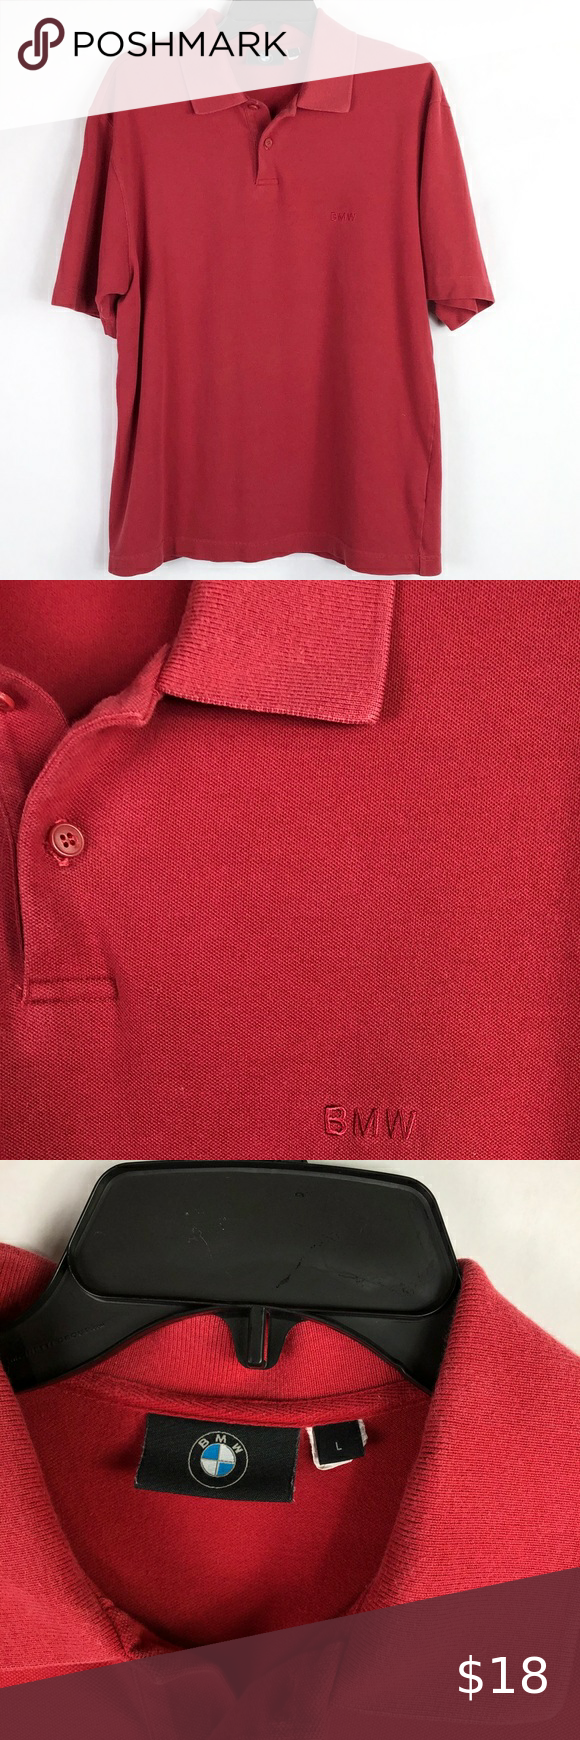 Bmw Red Polo Shirt Men S Size Large Red Polo Shirt Red Polo Shirt Mens Mens Polo Shirts